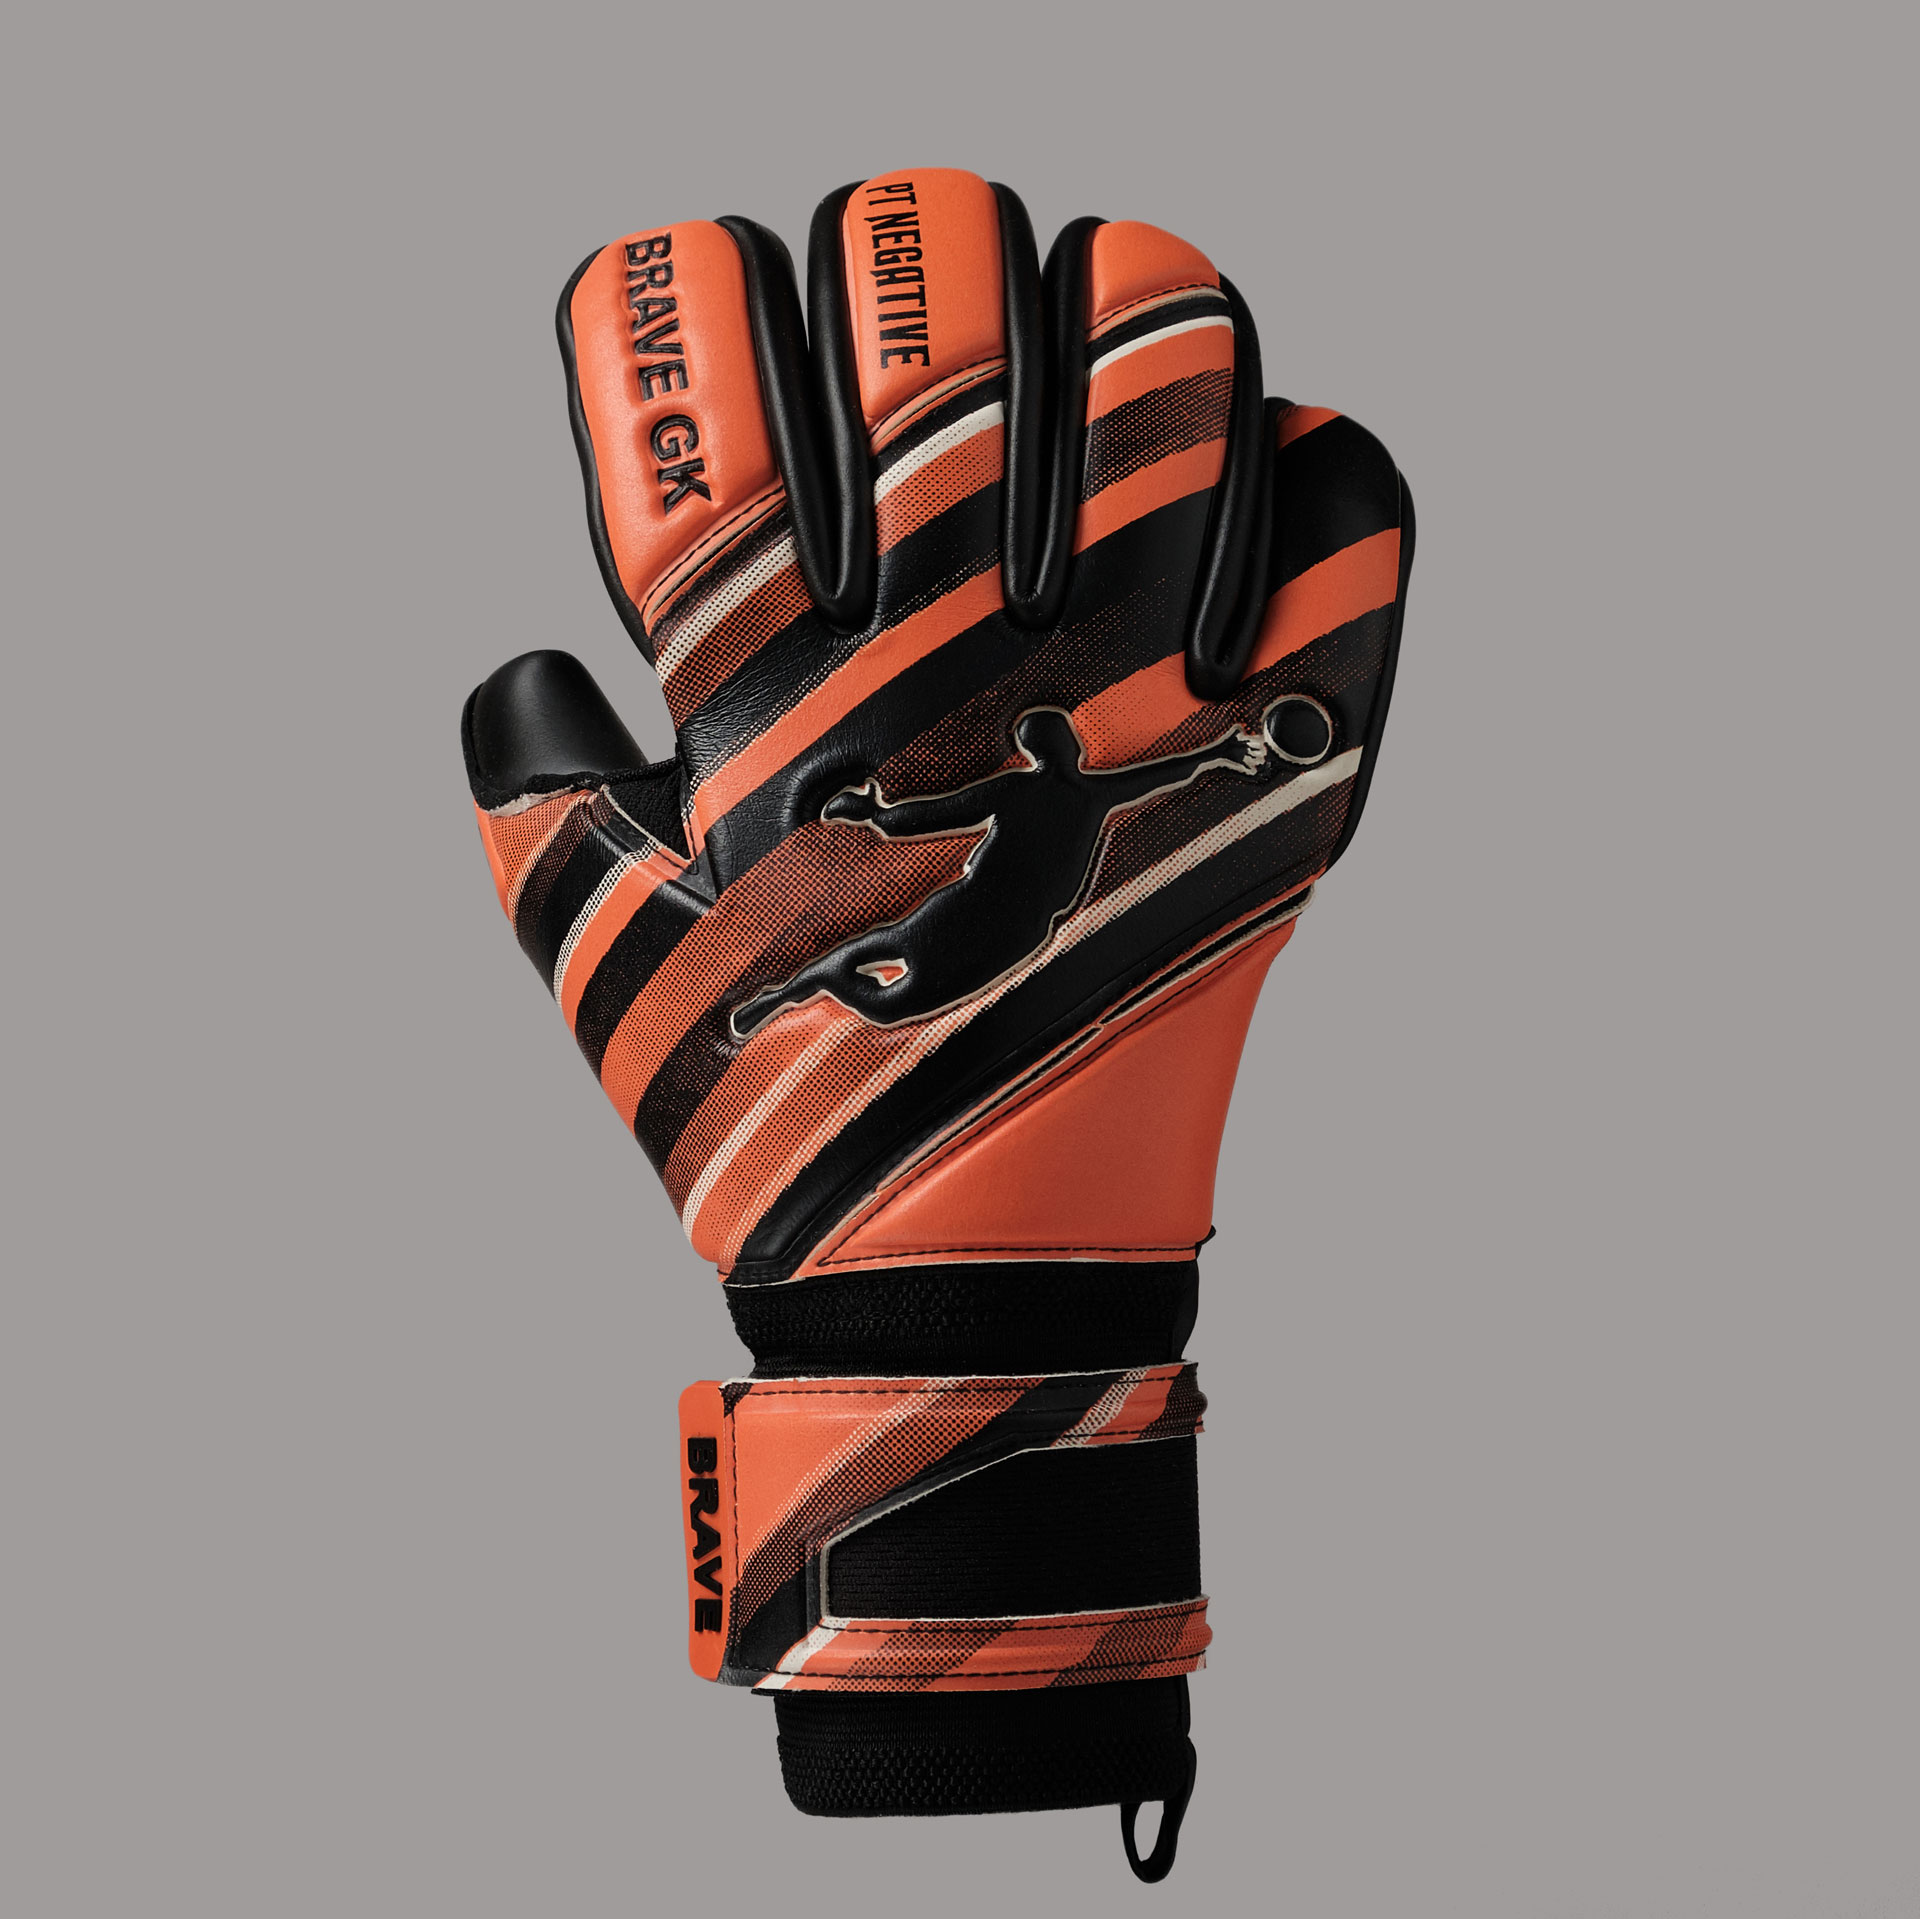 Brave GK Power Train Orange-2-Brave GK